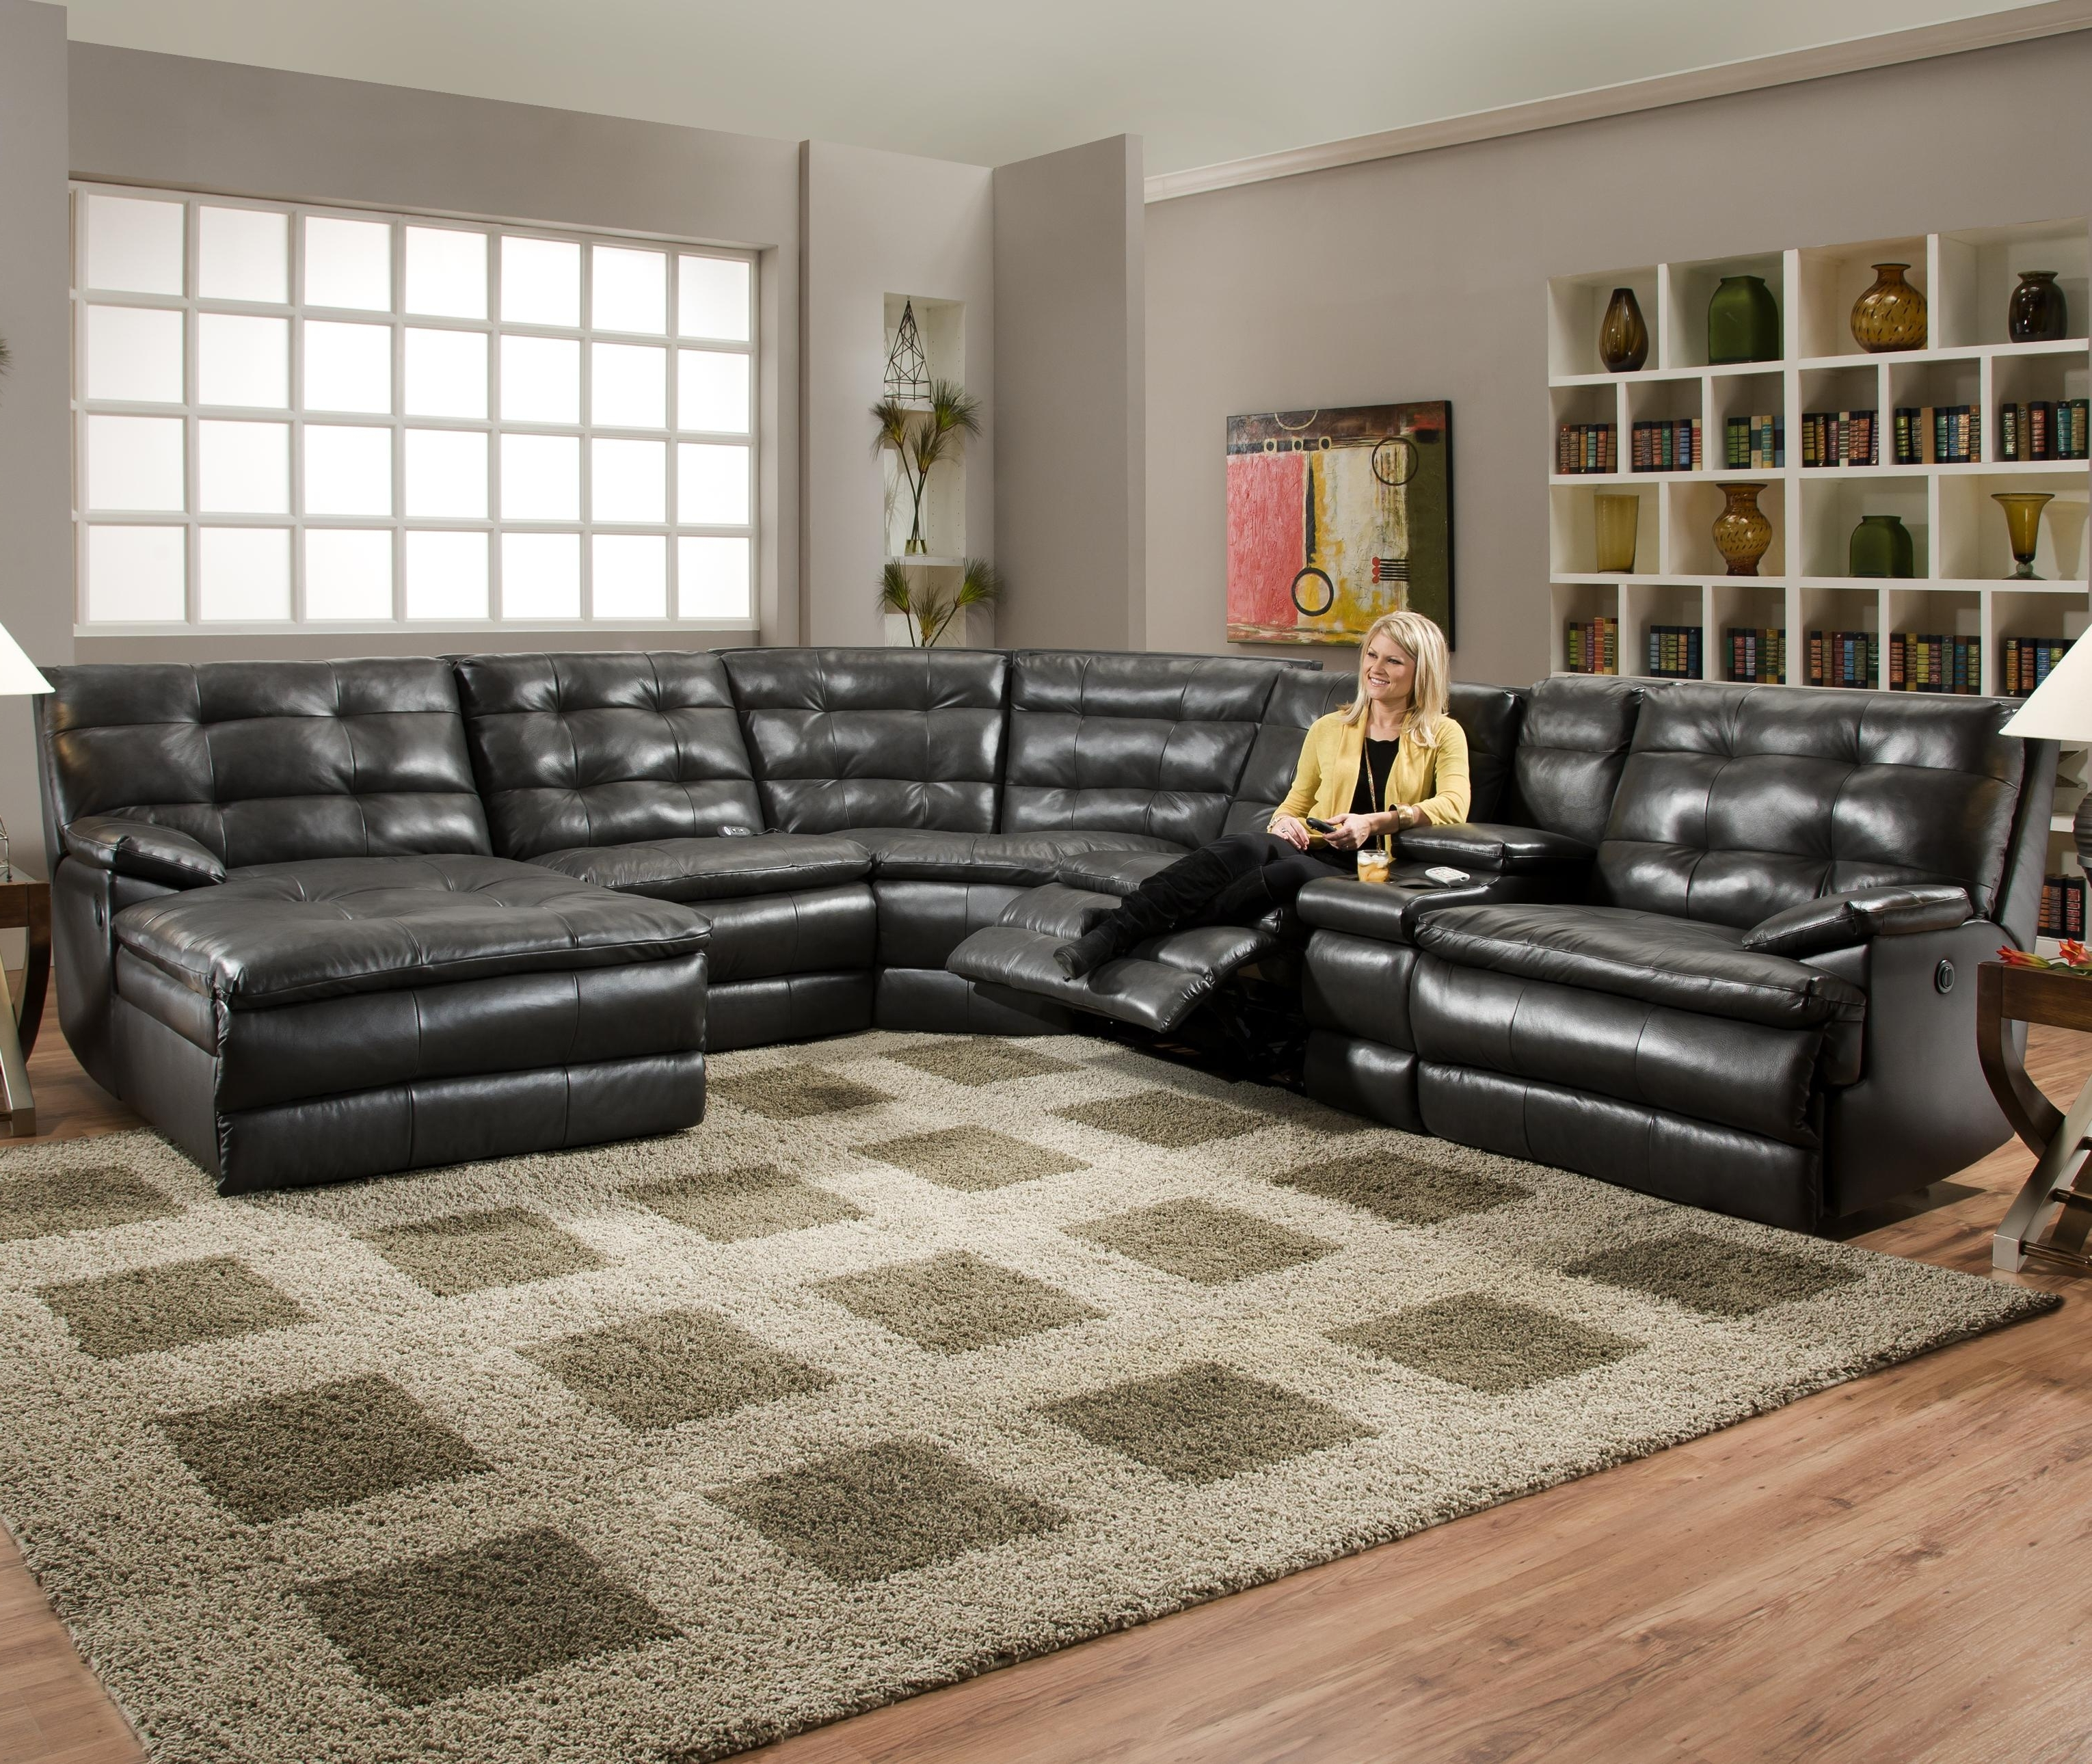 Sectional Sofas In Toronto Pertaining To Preferred Big Sofas Sectionals – Hotelsbacau (View 13 of 15)